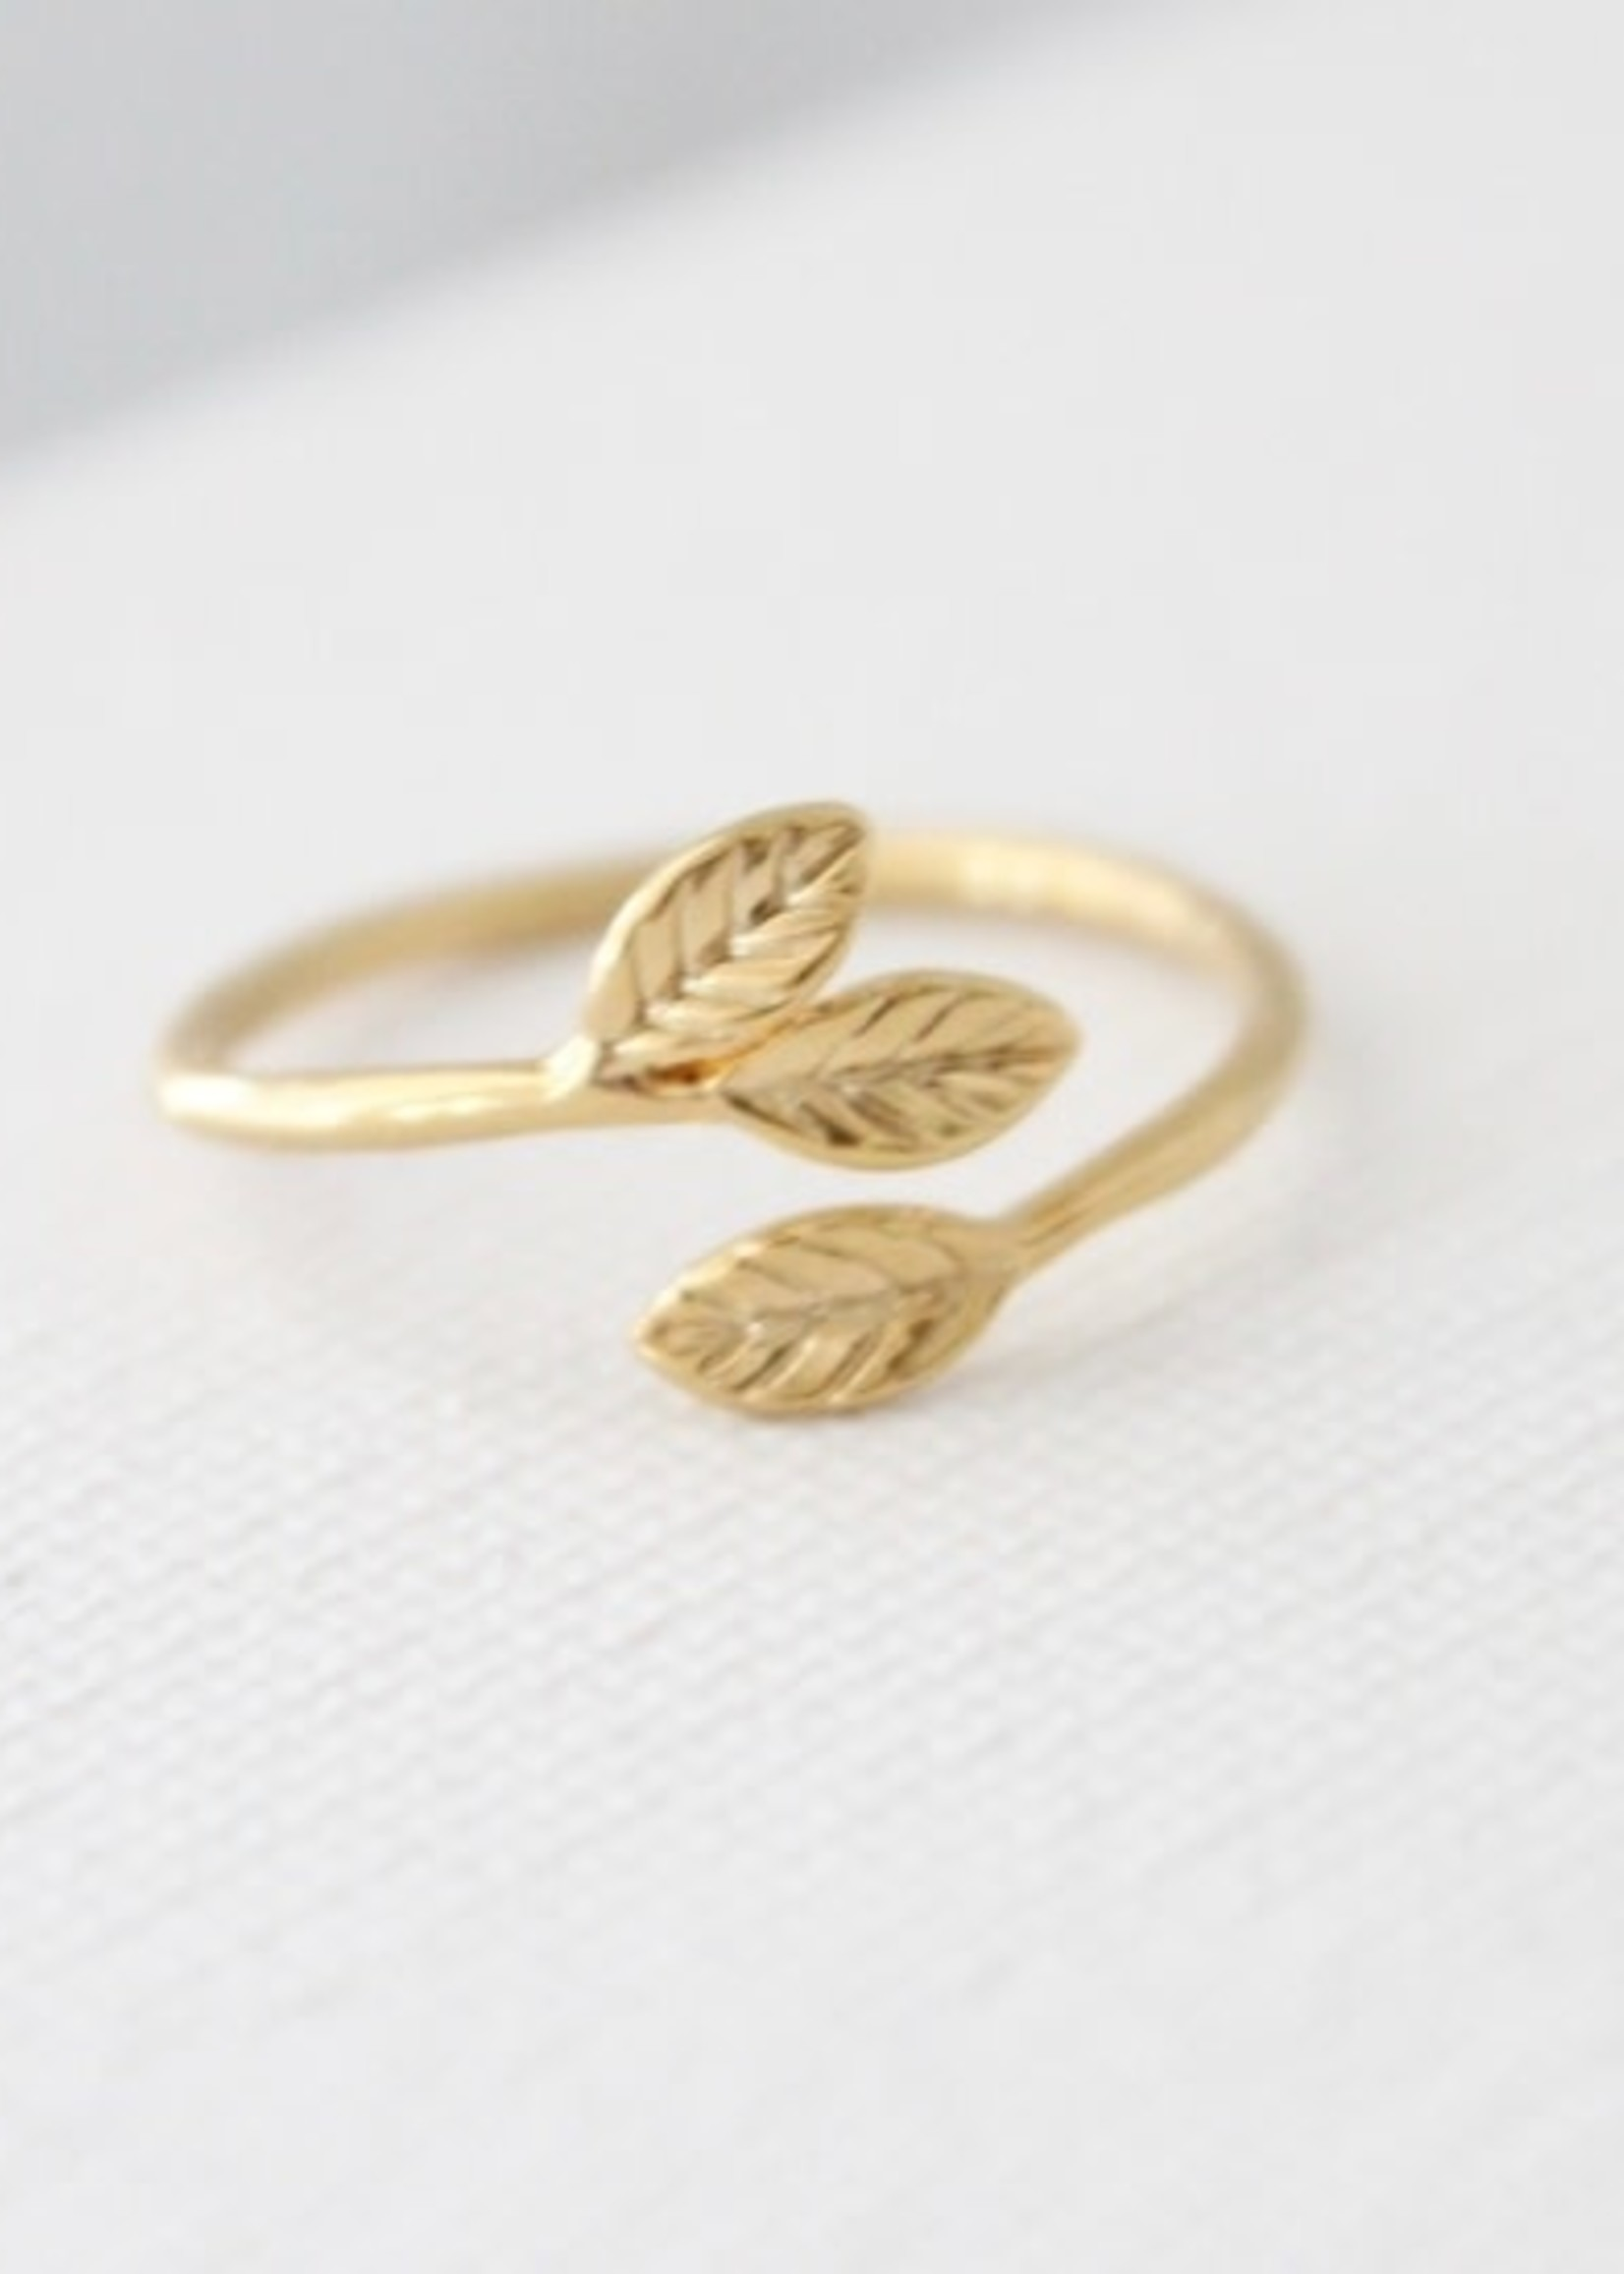 Katie Waltman Jewelry Petite Leaves Ring Gold